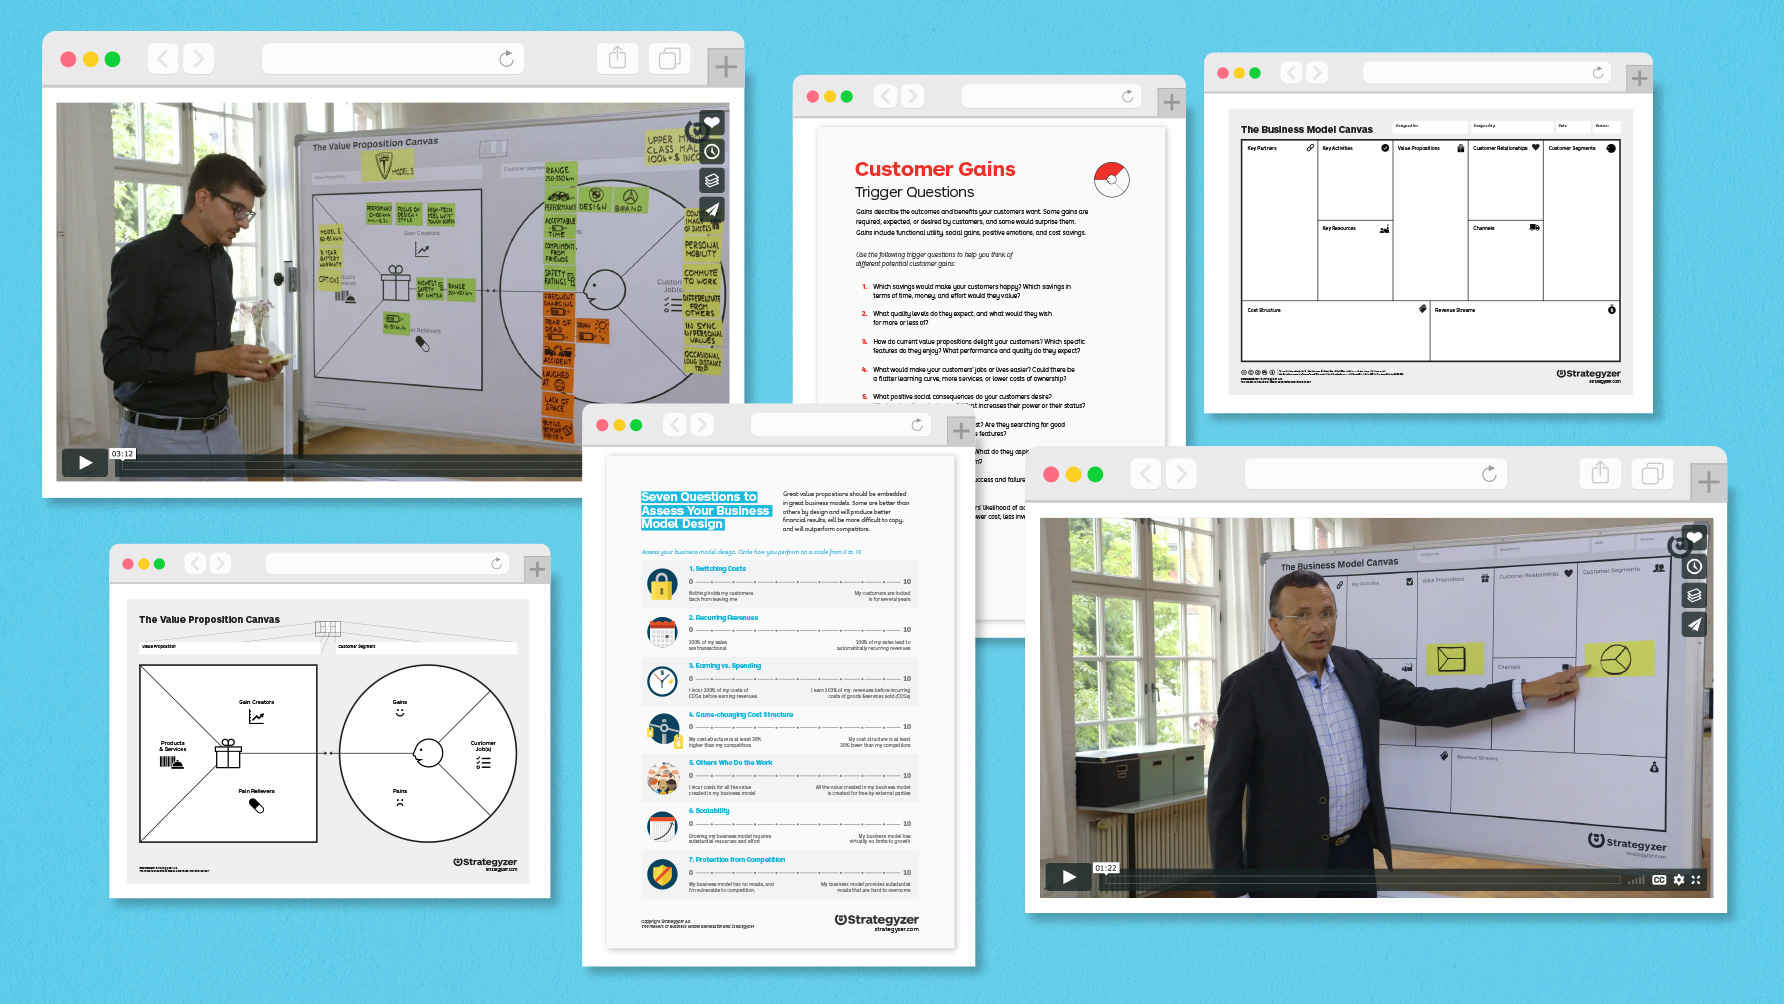 Free Online Course Materials For The Business Model Canvas And Value Proposition Canvas